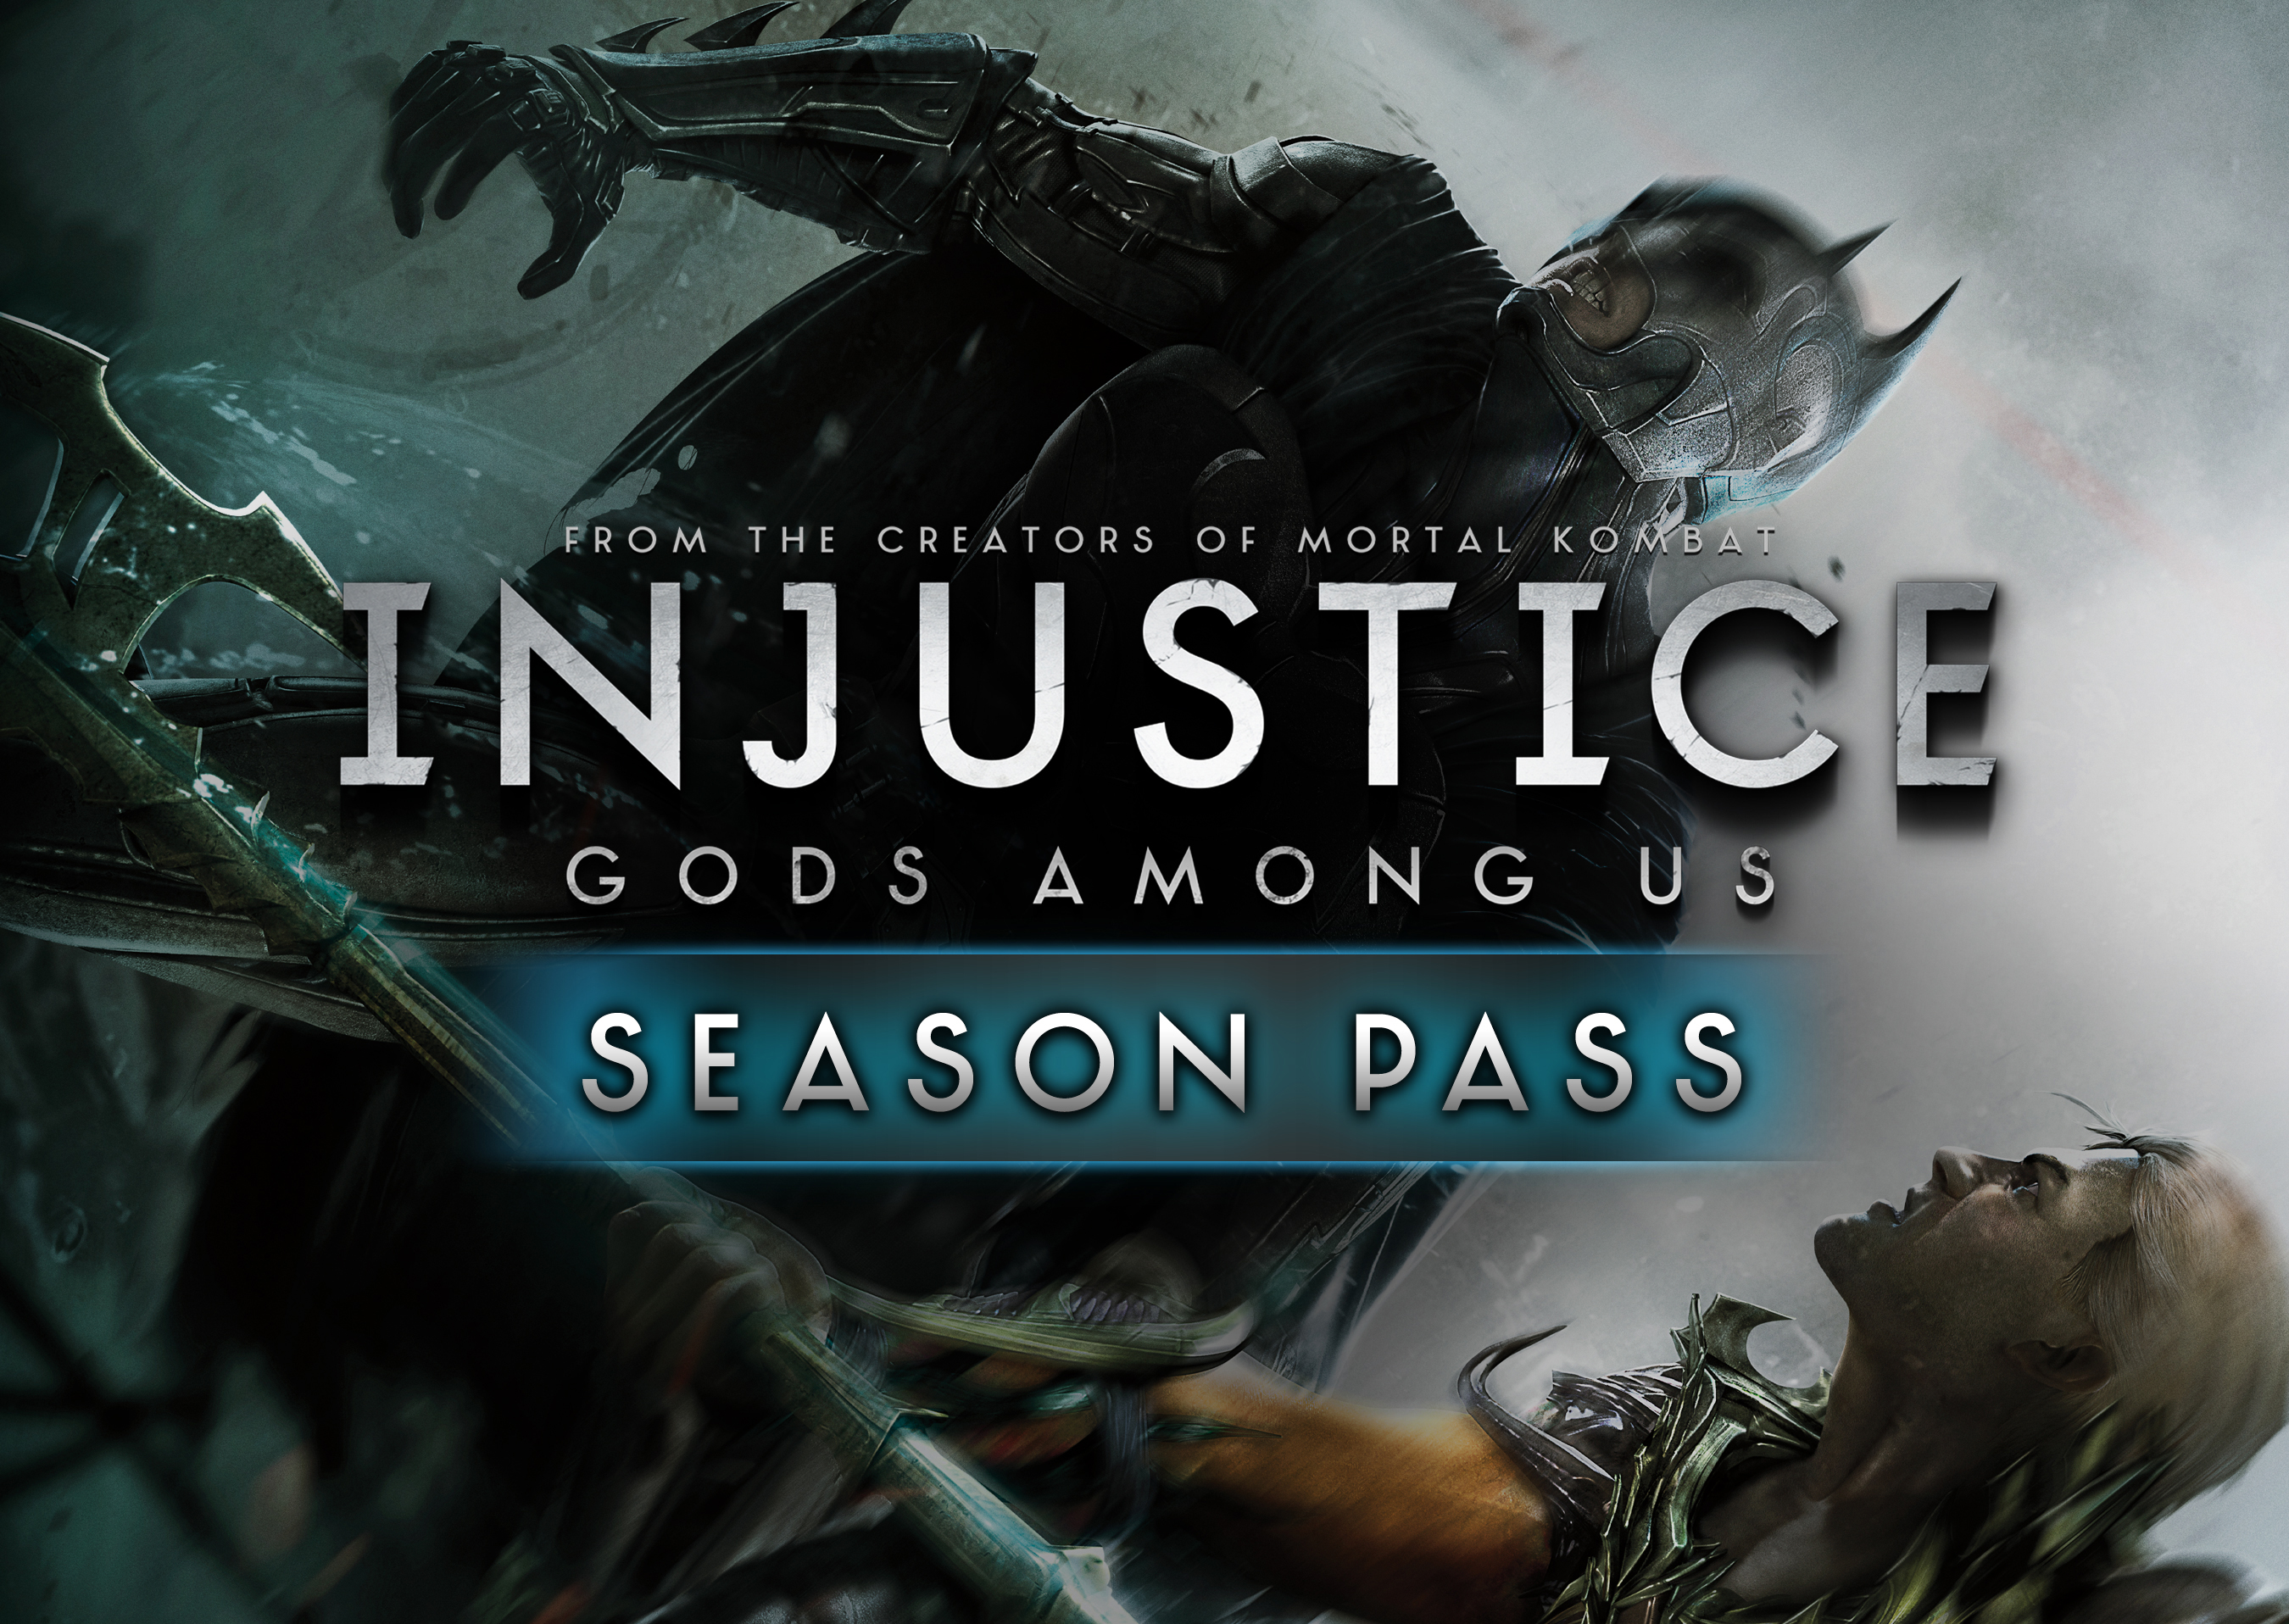 Injustice: Gods Among Us Season Pass